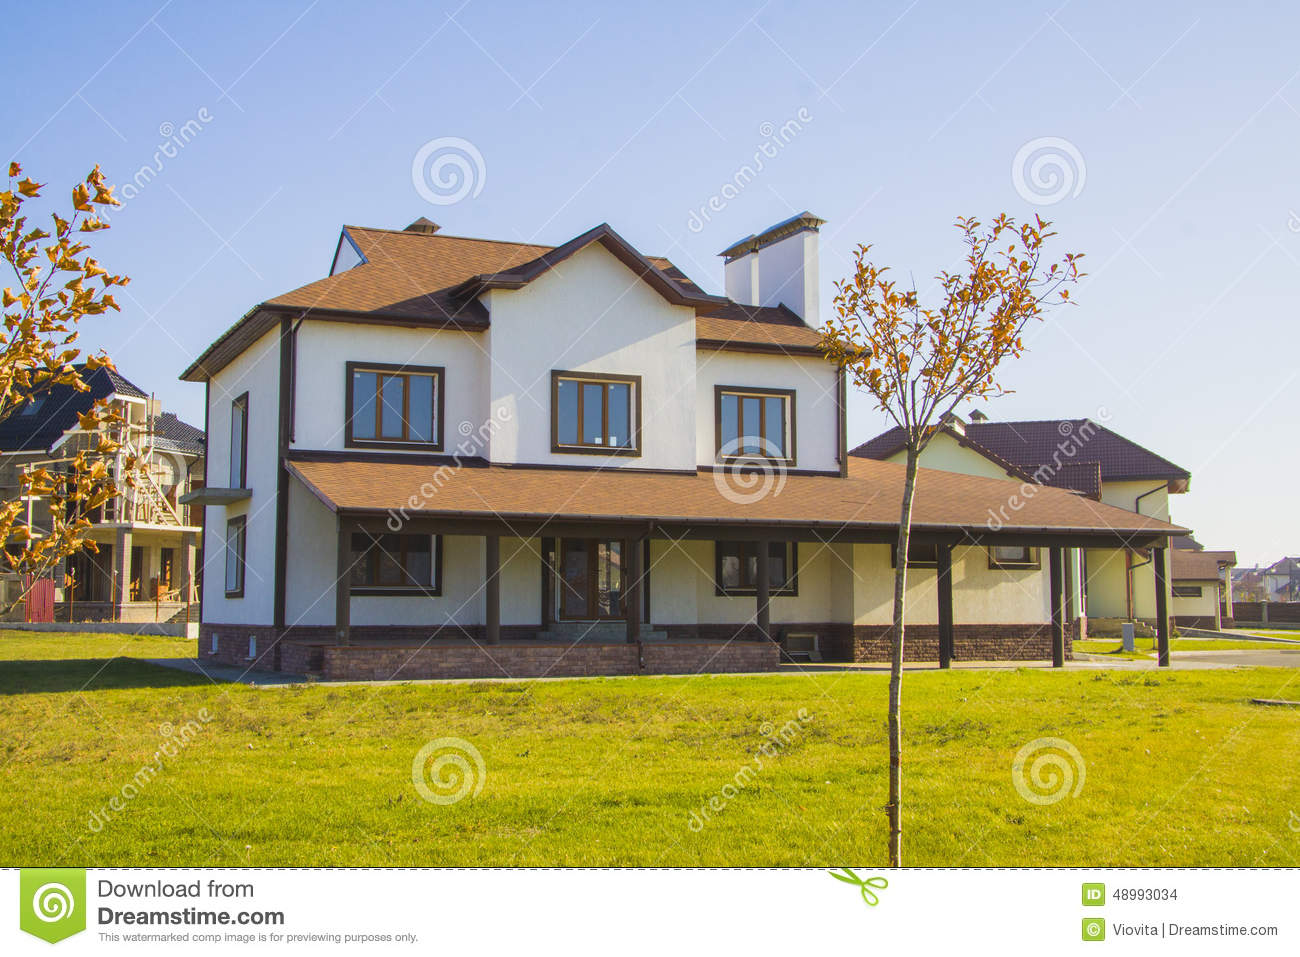 Classic american house with garden stock photo image for American classic house style